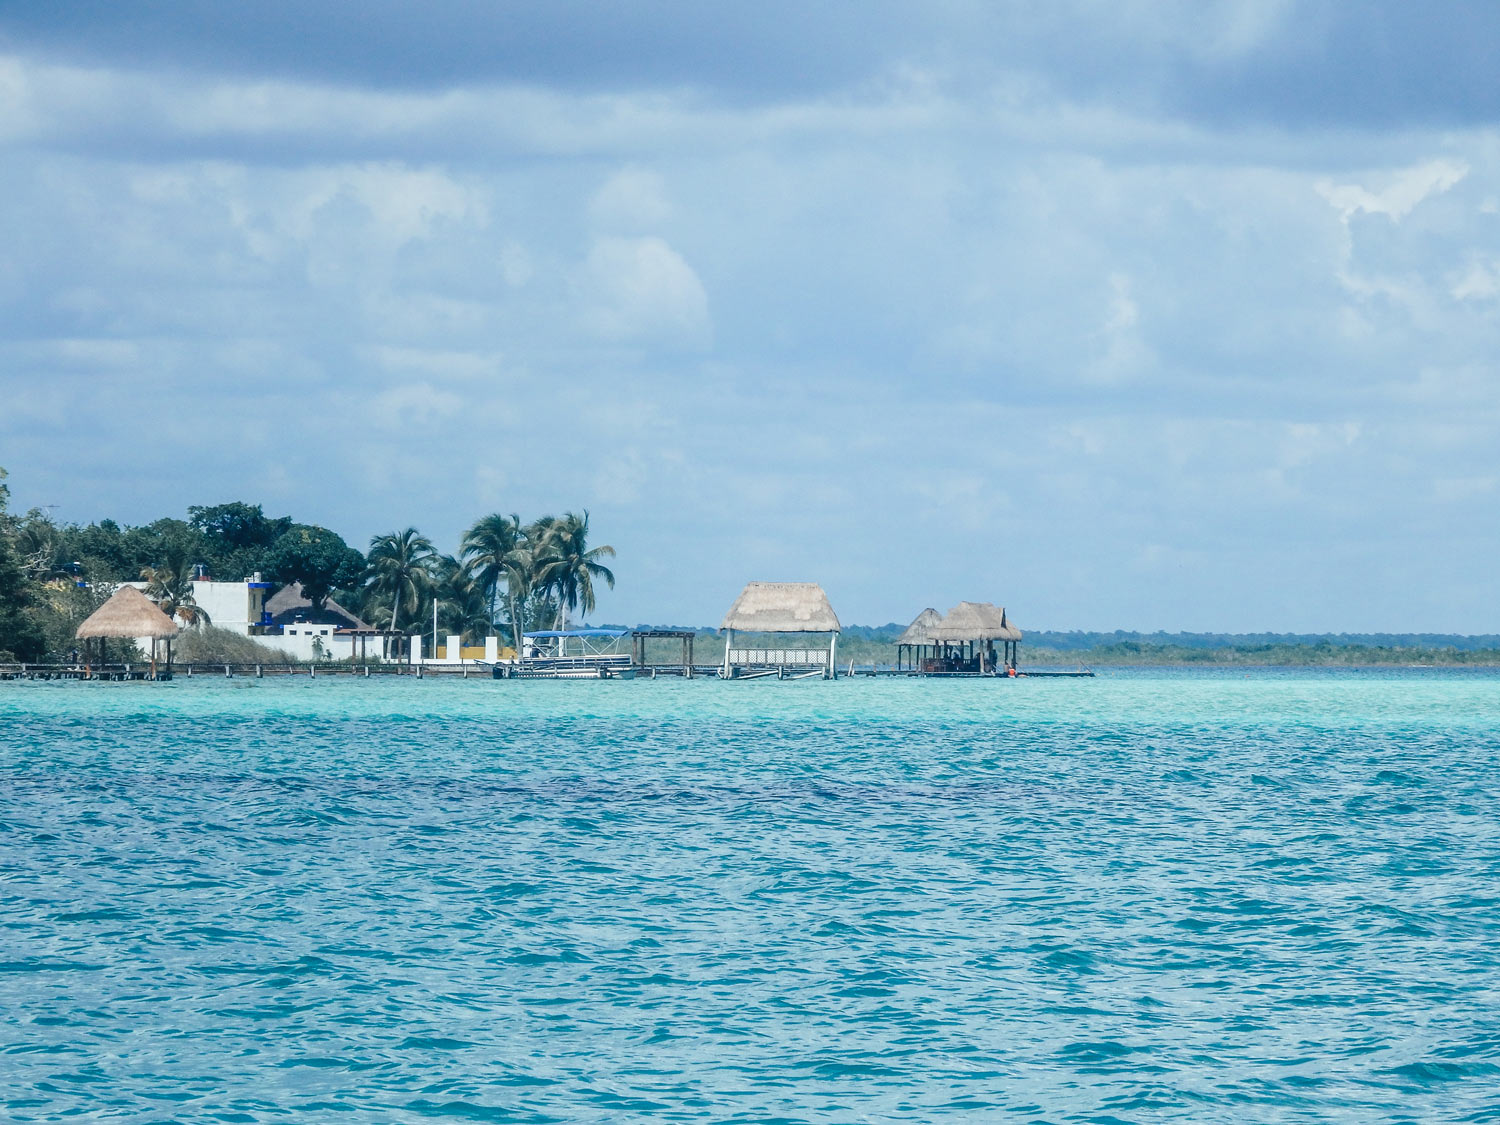 Travelling Caye Caulker the tropical paradise. A view of the wooden peers sticking out from the island